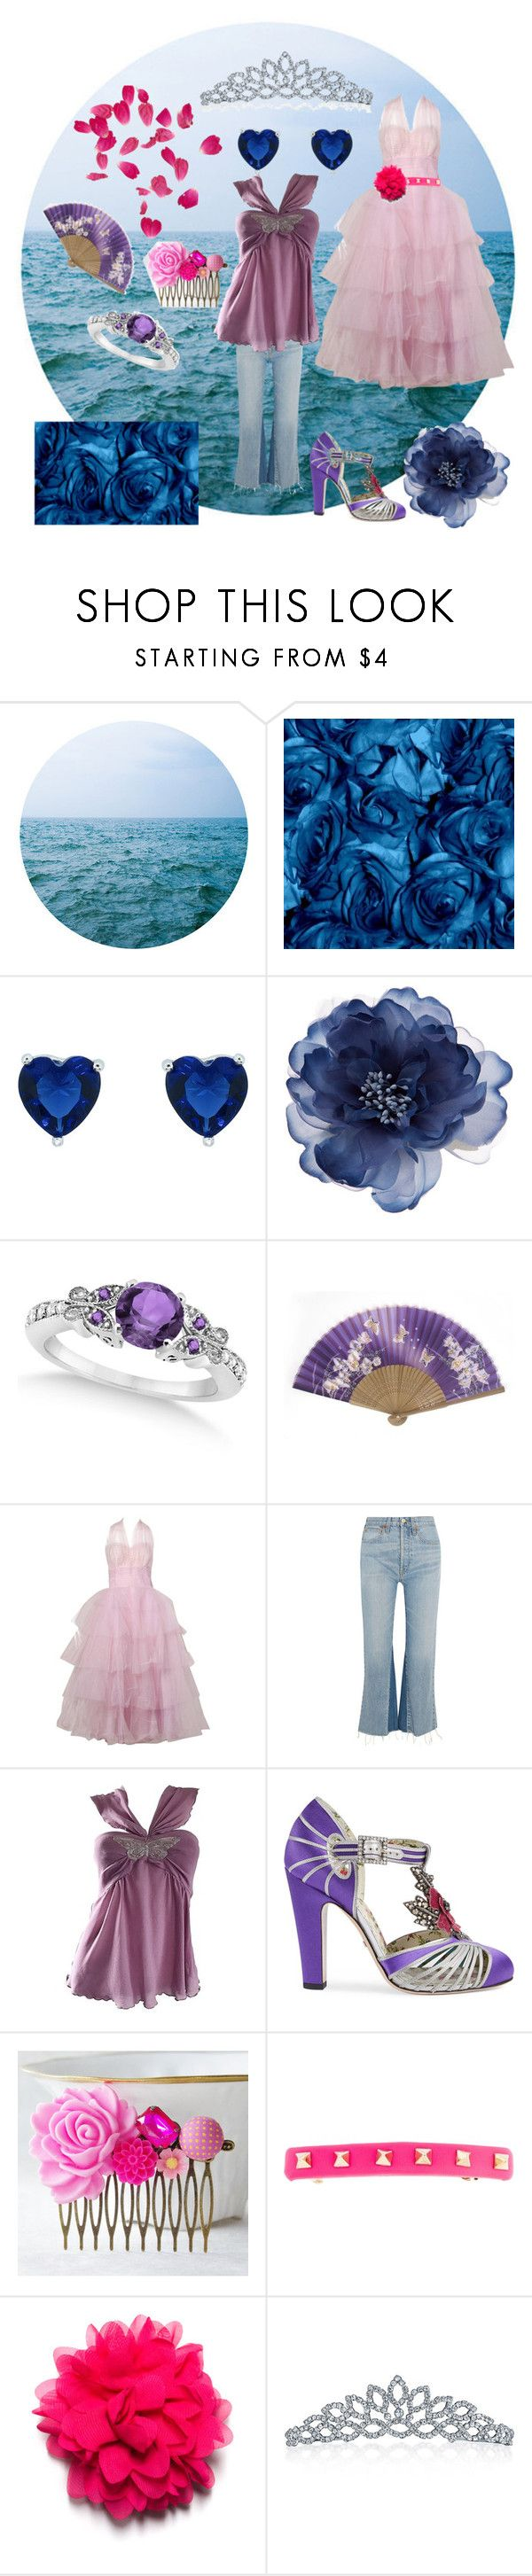 """""""Happy birthday!"""" by fandom-girl365790 ❤ liked on Polyvore featuring WALL, Accessorize, Allurez, RE/DONE, Alessandro Dell'Acqua, Gucci, Valentino and Bling Jewelry"""